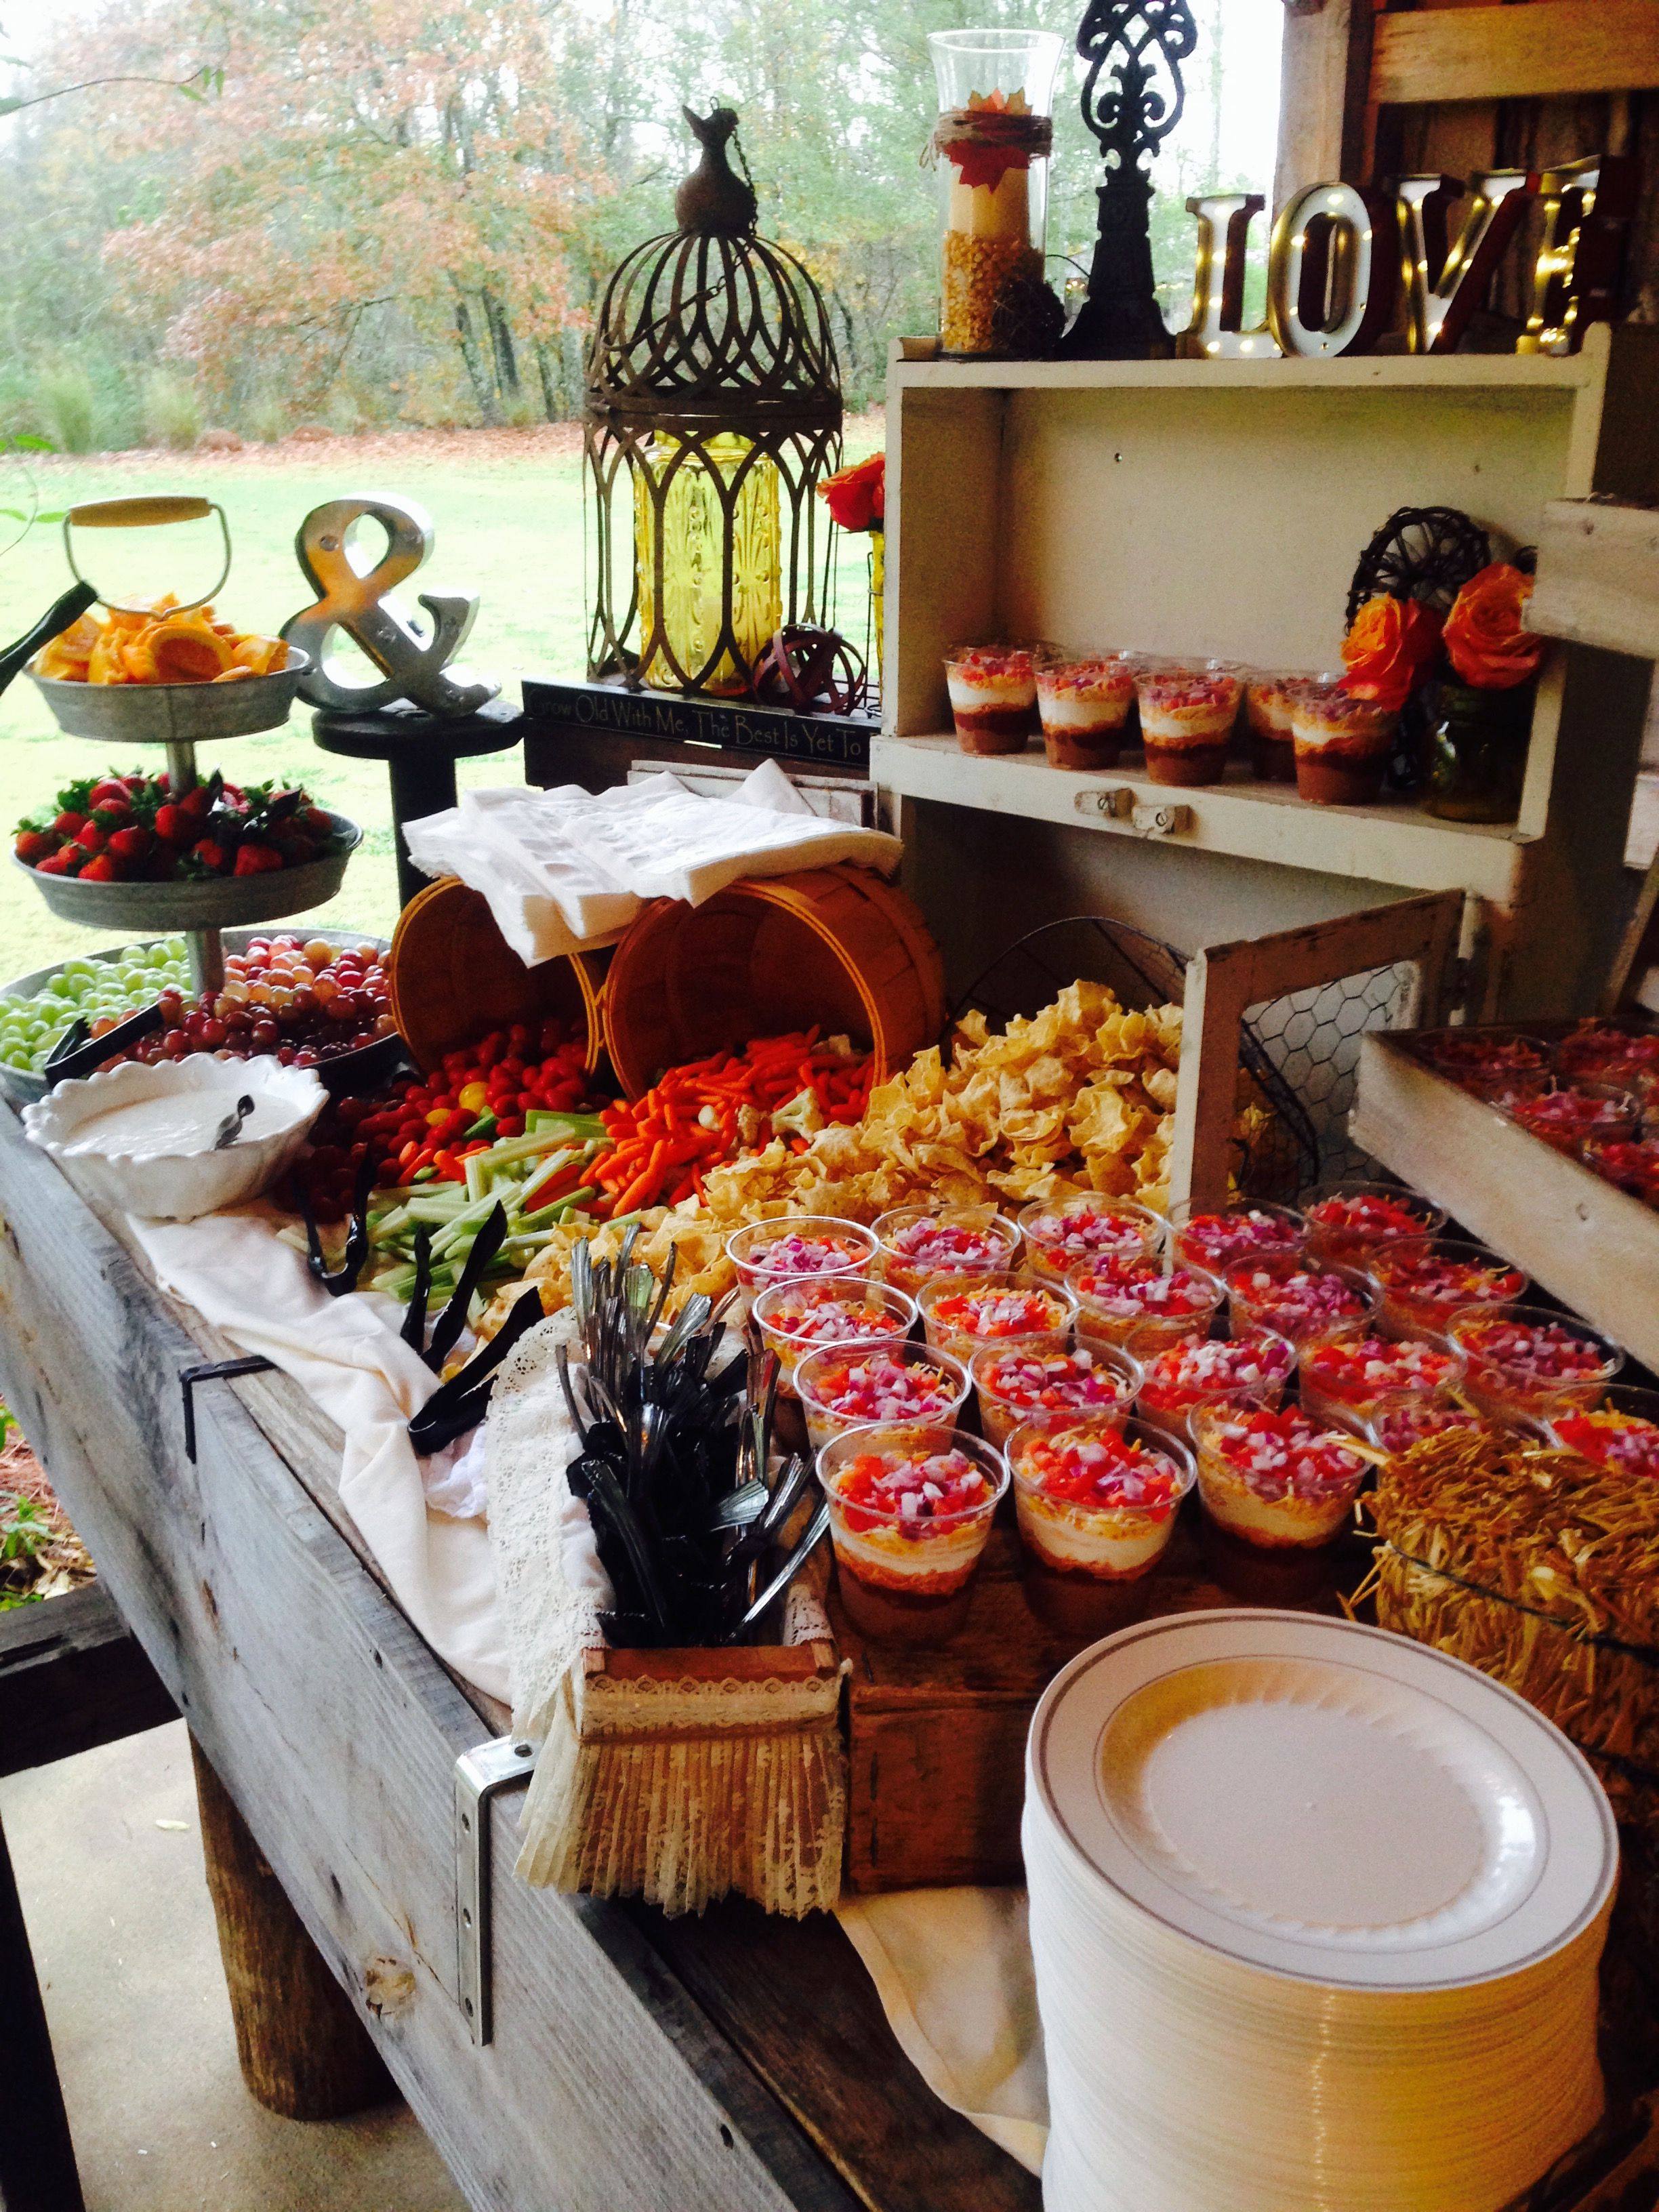 Pin By Mary Anne Stay On Catering Catering Food Displays